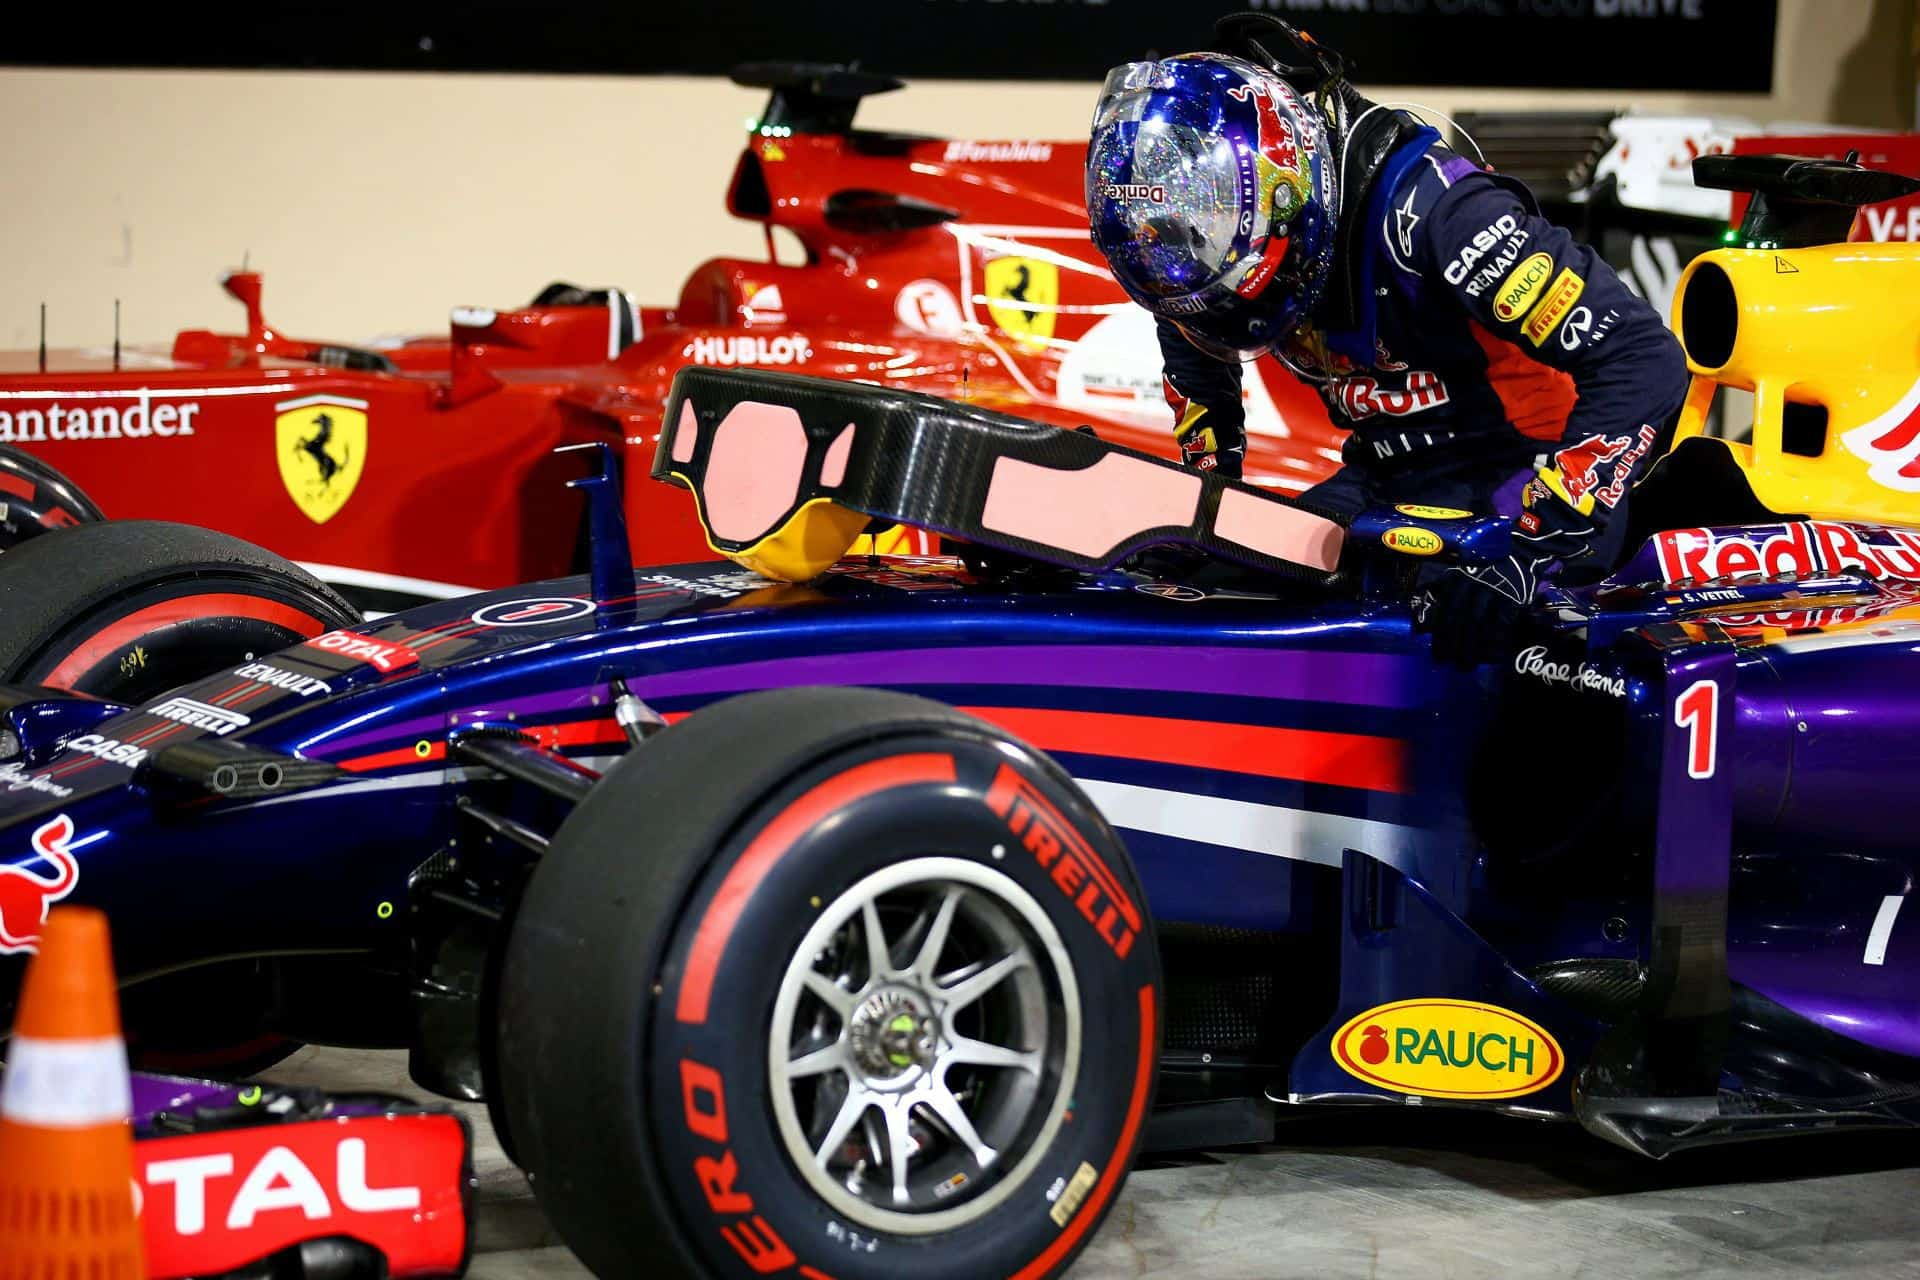 Vettel Alonso Abu Dhabi F1 2014 Parc ferme Photo Red Bull